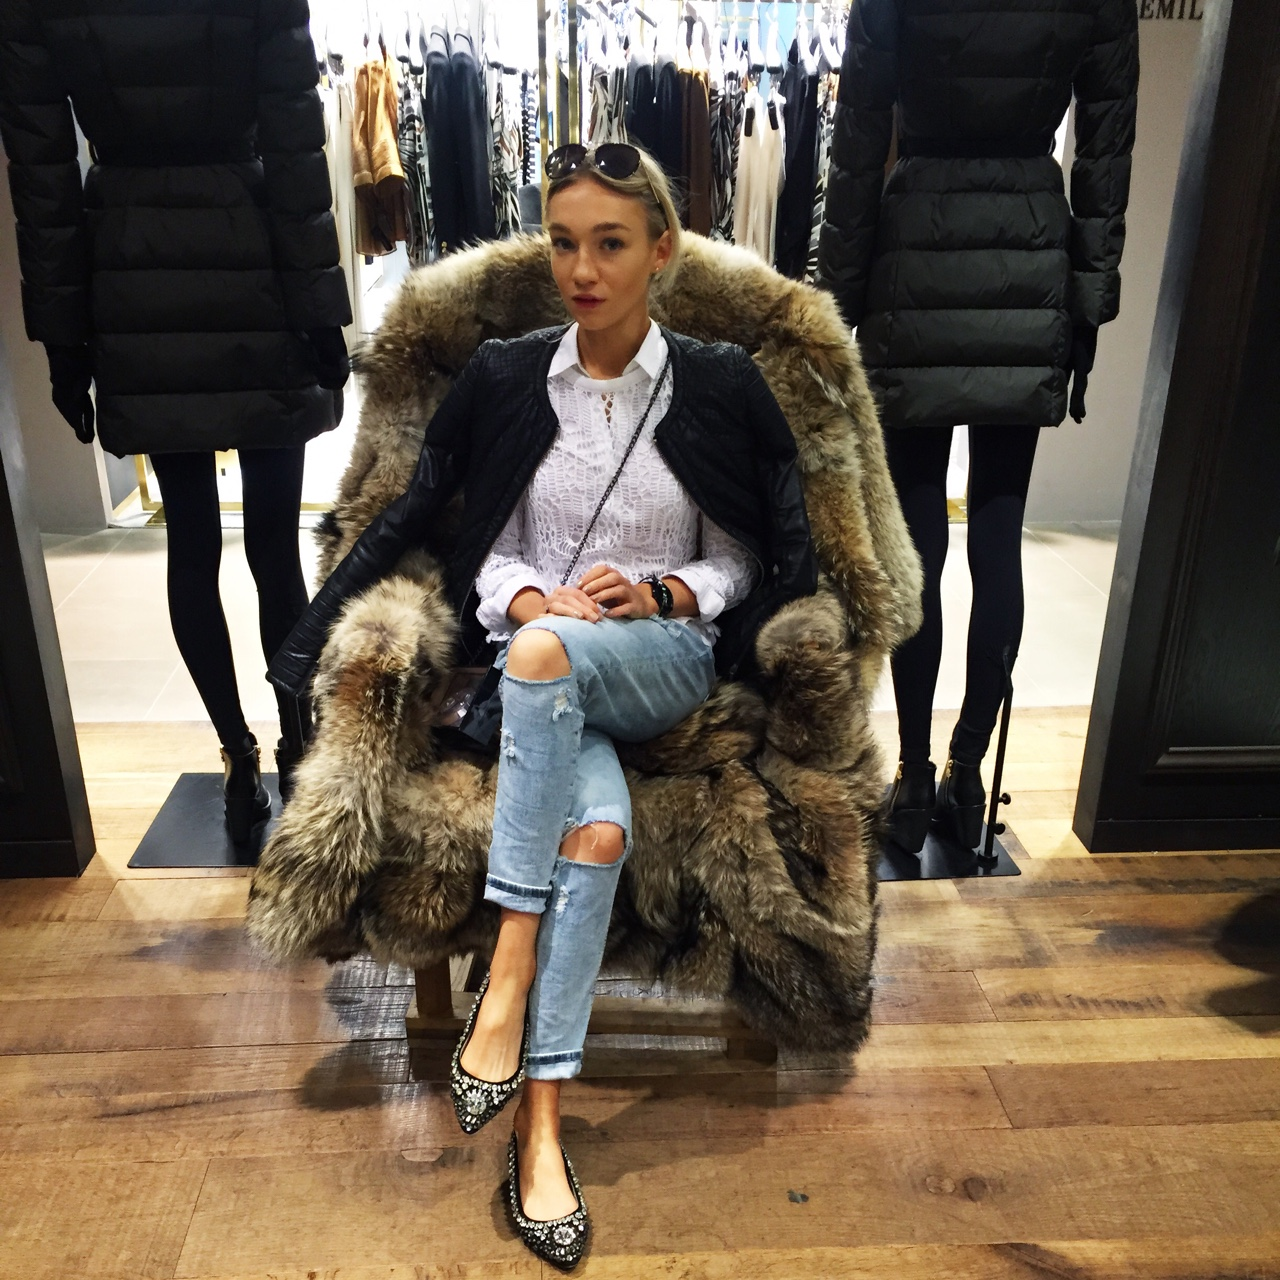 Imagine a Moncler fur chair… Flashing back to La Rinascente chilling at the Moncler section! Loved looking at the more fashion forward jackets and the baby Moncler- so cute! S H E